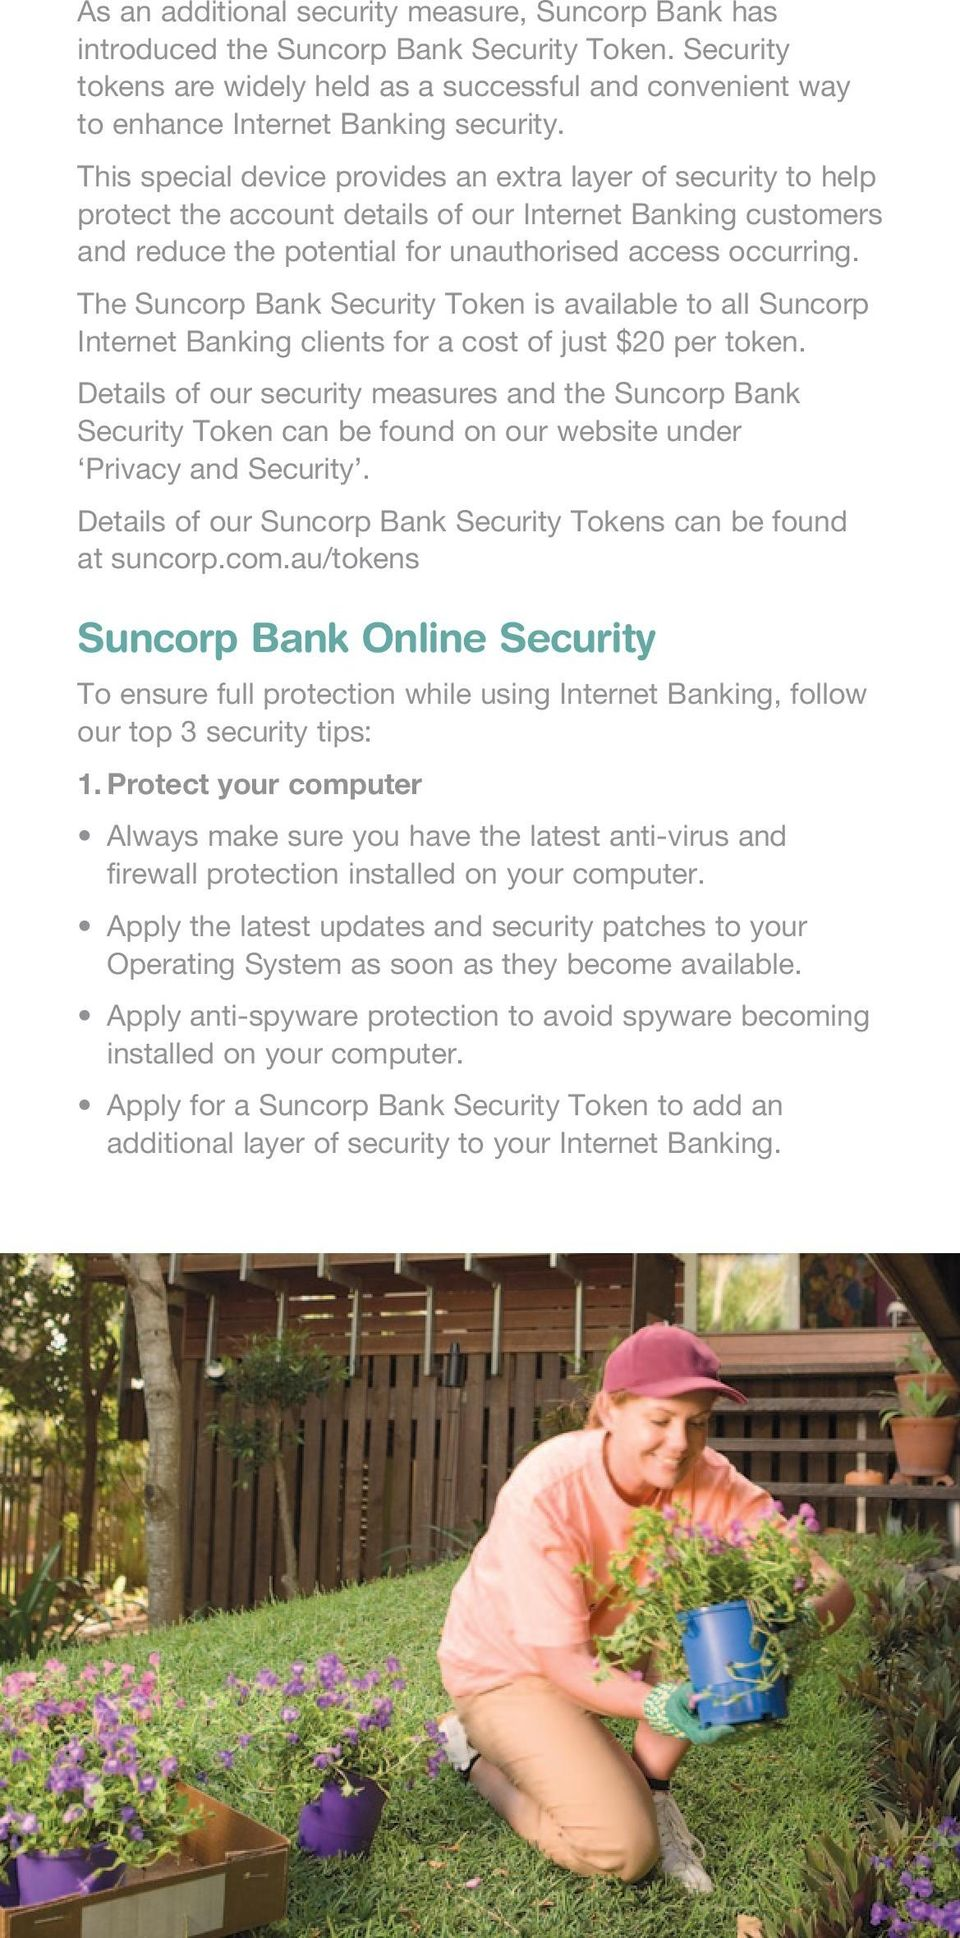 The Suncorp Bank Security Token is available to all Suncorp Internet Banking clients for a cost of just $20 per token.